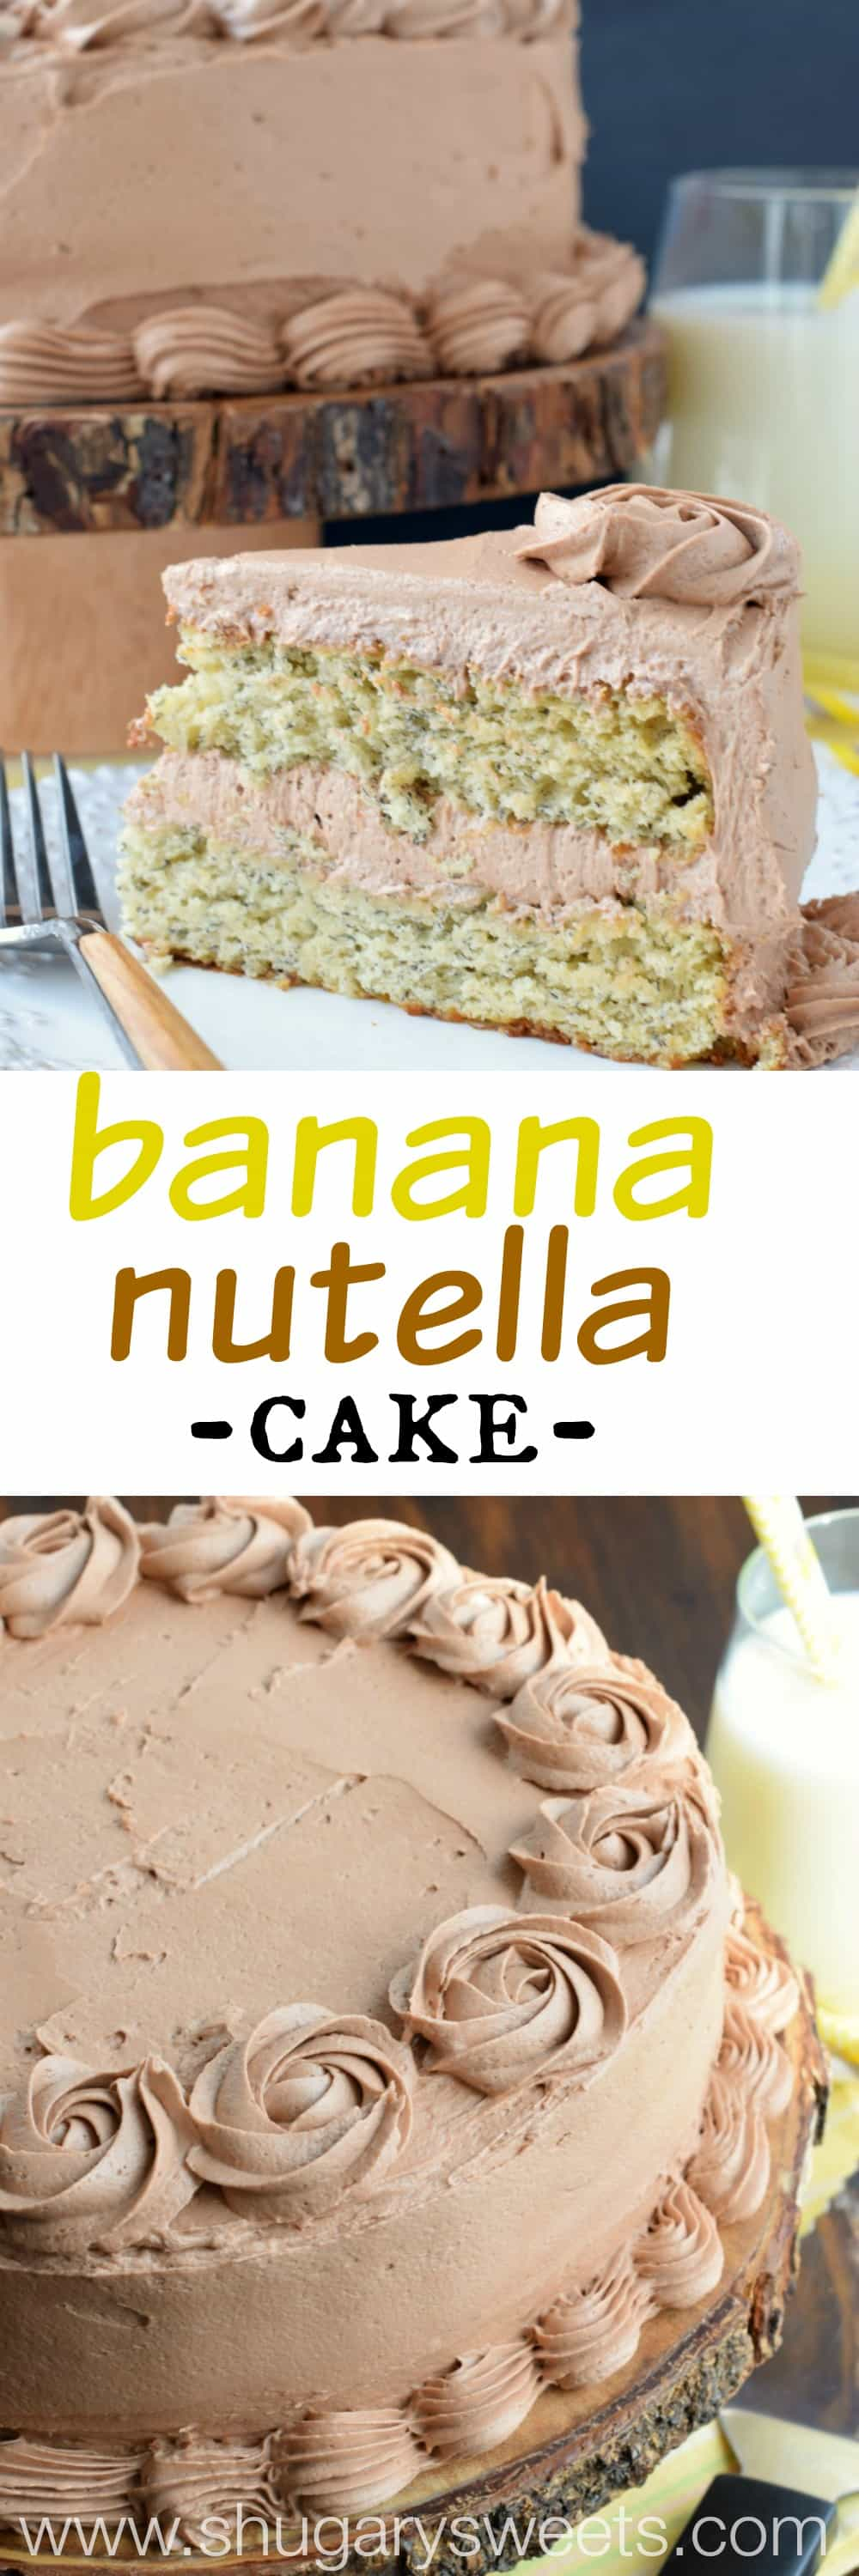 Shugary Sweets Banana Cake with Nutella Frosting - Shugary Sweets